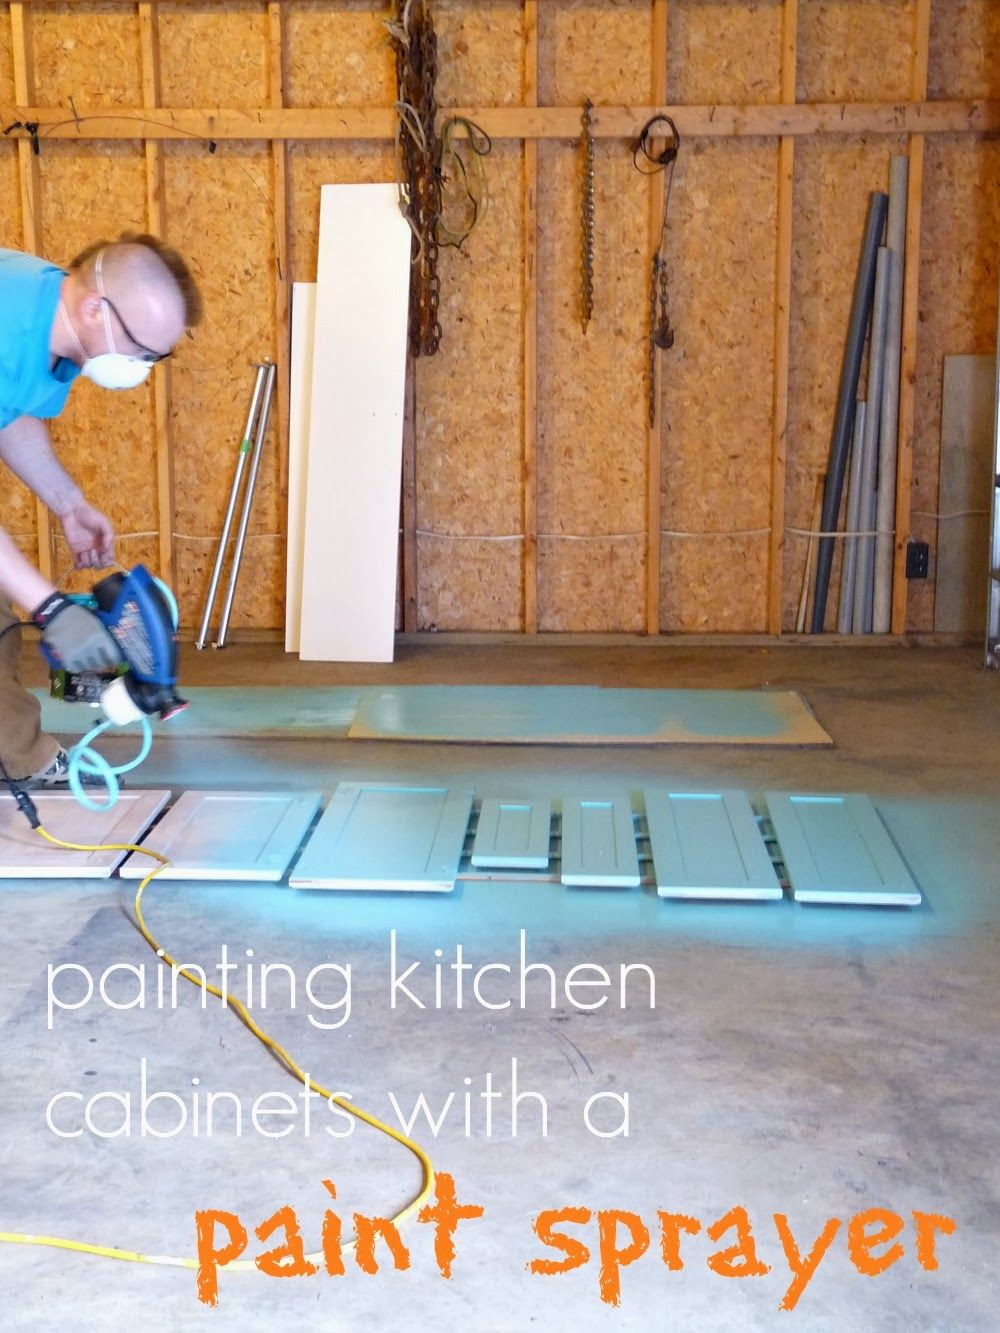 Painting the kitchen cabinets with a paint sprayer